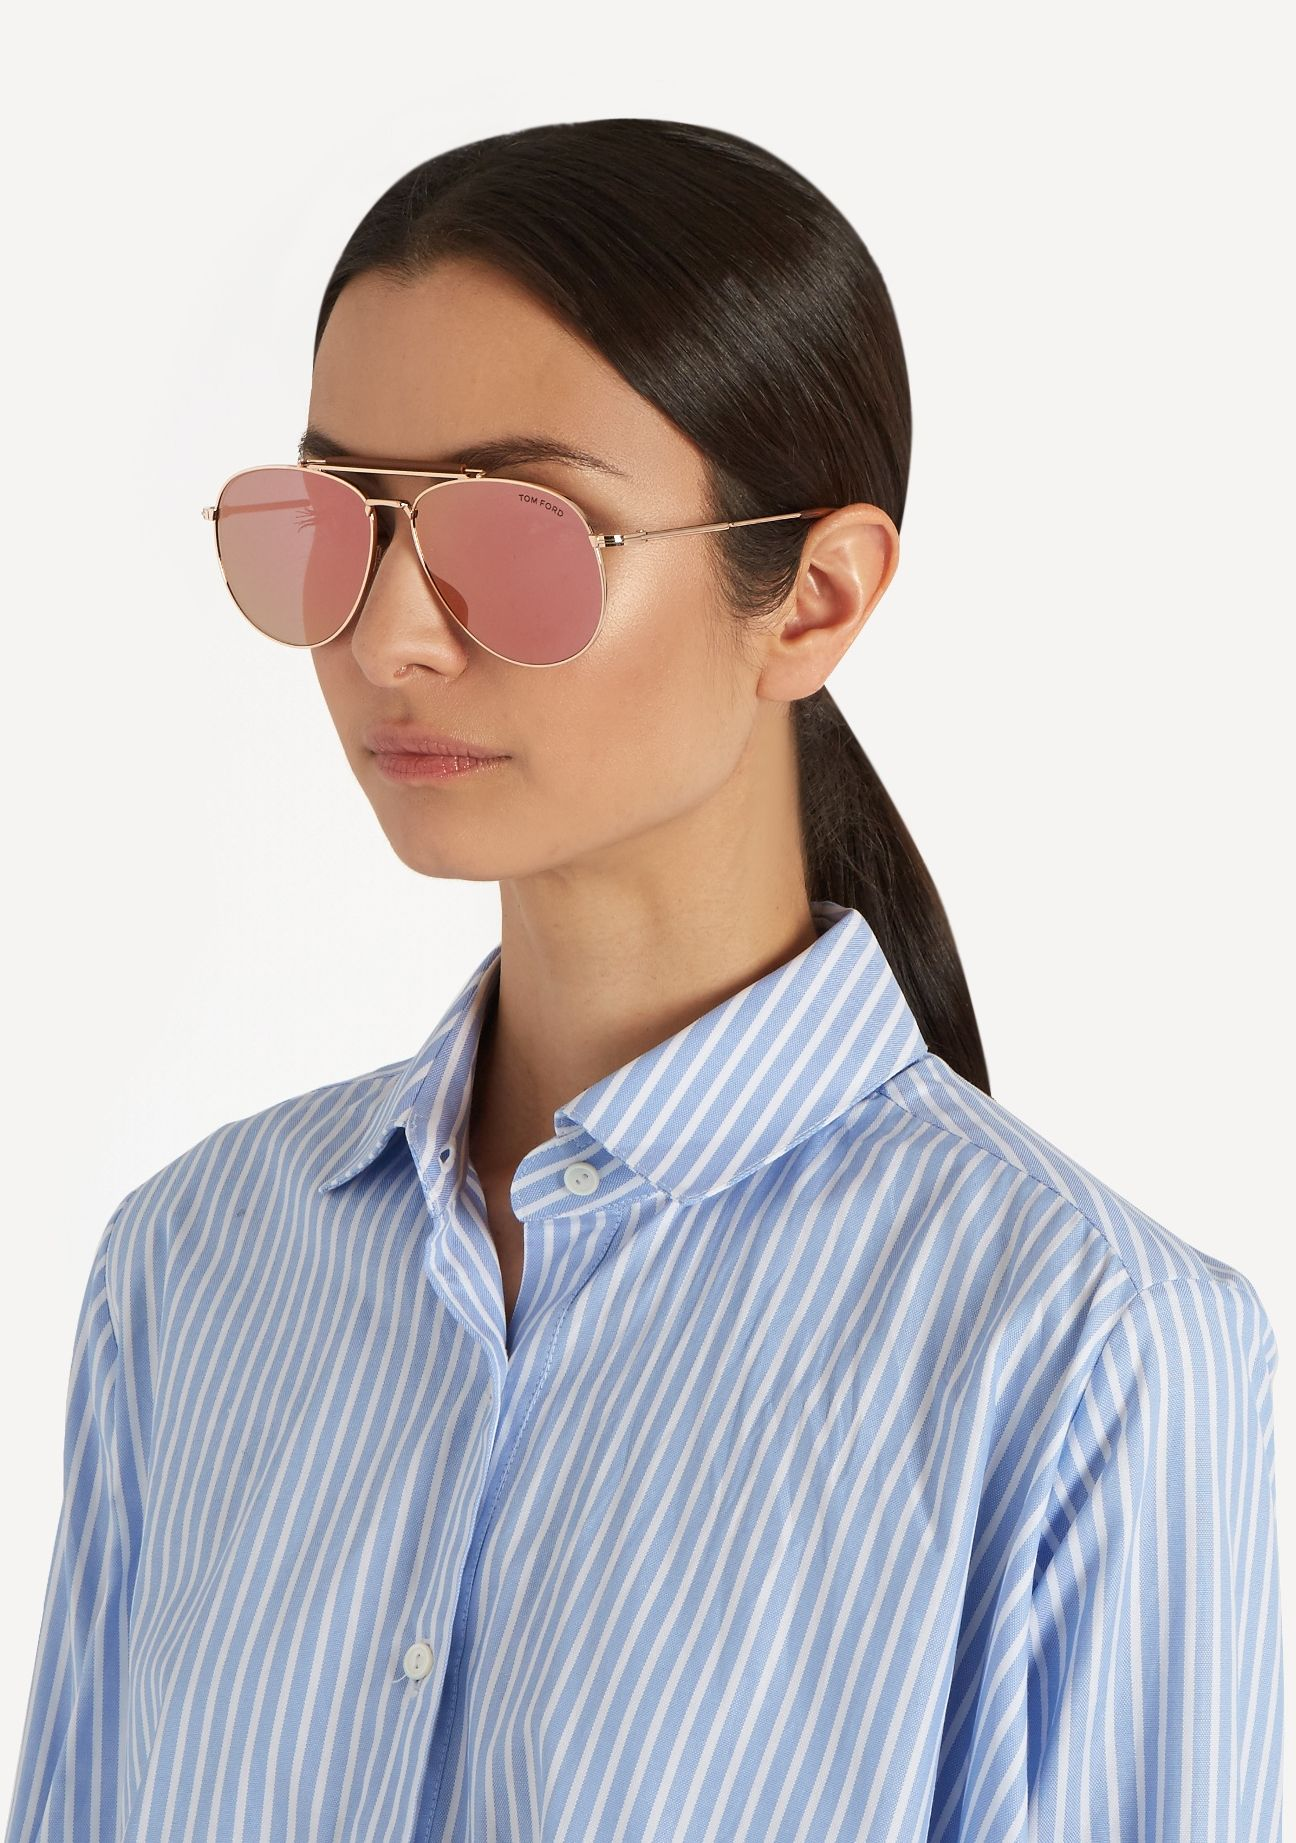 5509834efc Lenses · Sunnies · Eyewear · Tom Ford Sean sunglasses in shiny rose gold  pink are stylish